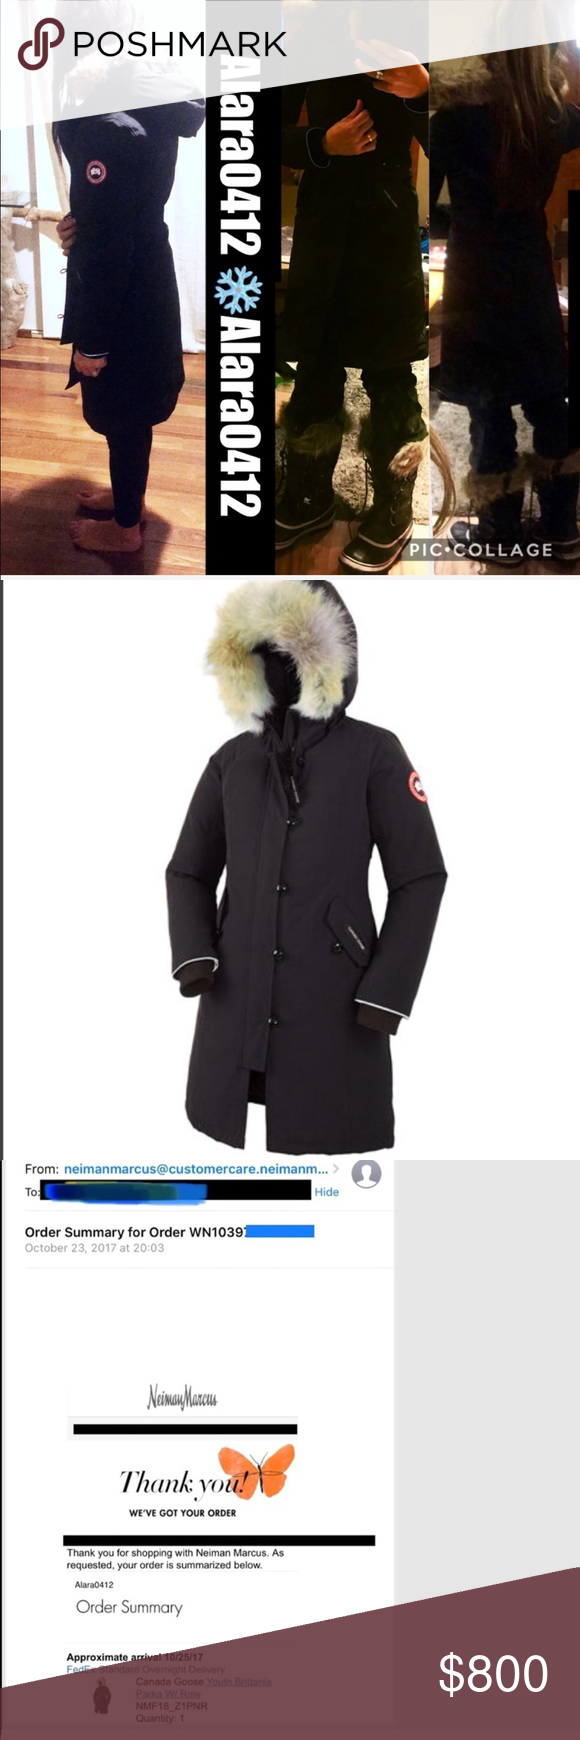 BRITANNIA PARKA CANADA GOOSE KIDS SIZE : L FIT XS SOLD OUT KIDS BRITANNIA PARKA FUR JACKET BLACK SIZE LARGE : KIDS , I PAID $800 FOR THIS FROM NM LAST MONTH ...